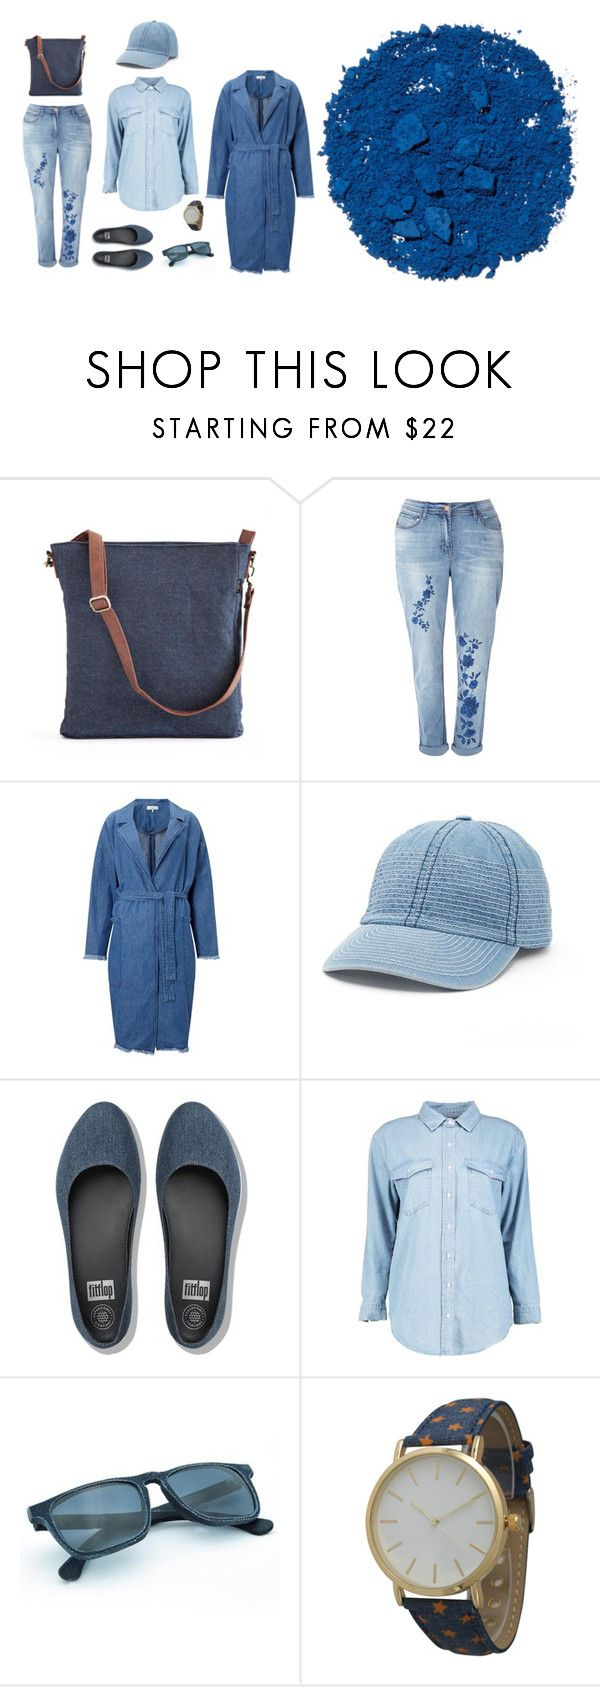 """Untitled #8"" by liketooshort ❤ liked on Polyvore featuring Maika, Minimum, Mudd, FitFlop, Boohoo, Olivia Pratt and Illamasqua"